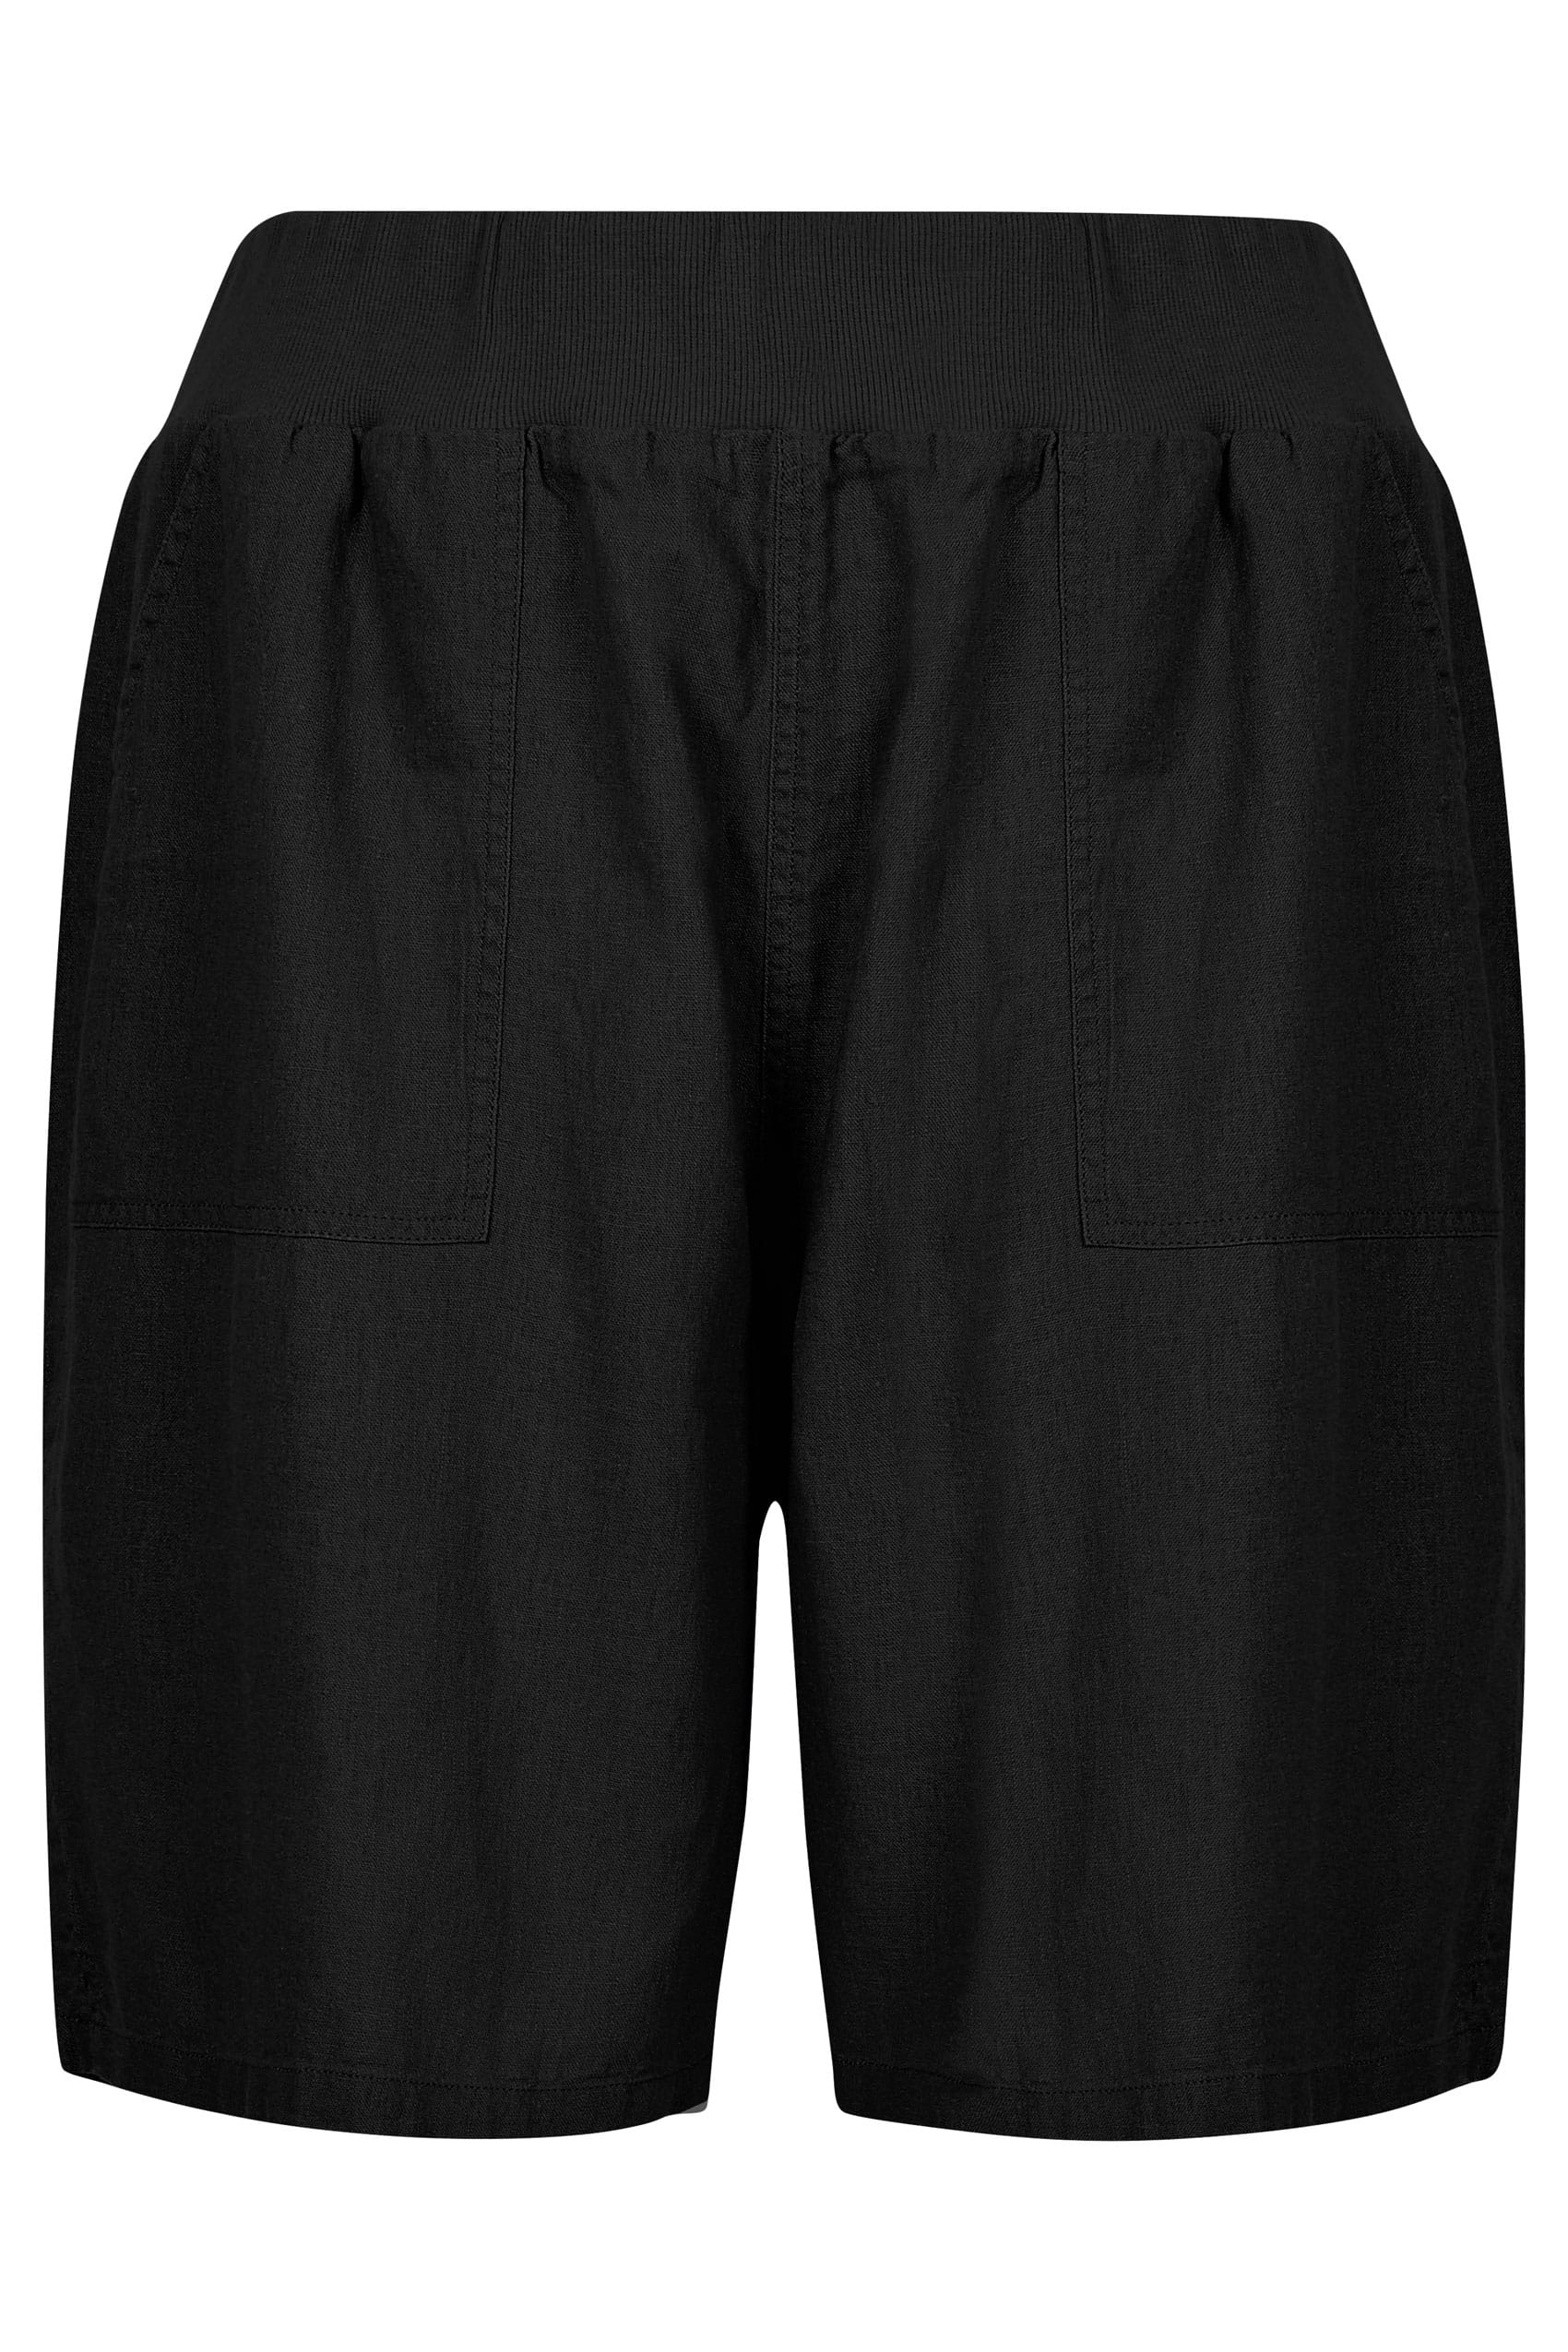 Black Linen Mix Pull On Shorts With Pockets, plus size 16 ...